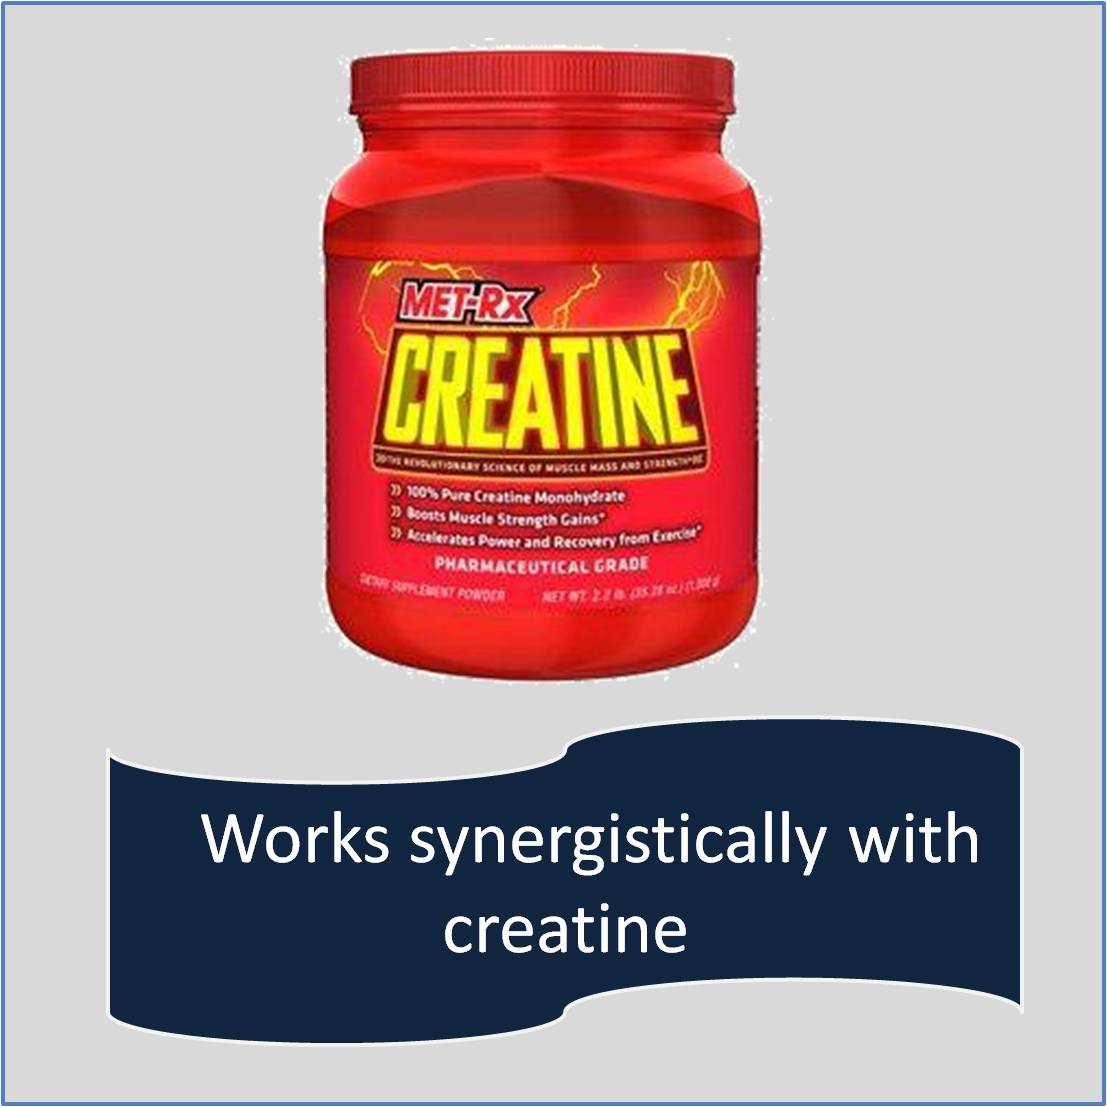 Works synergistically with creatine